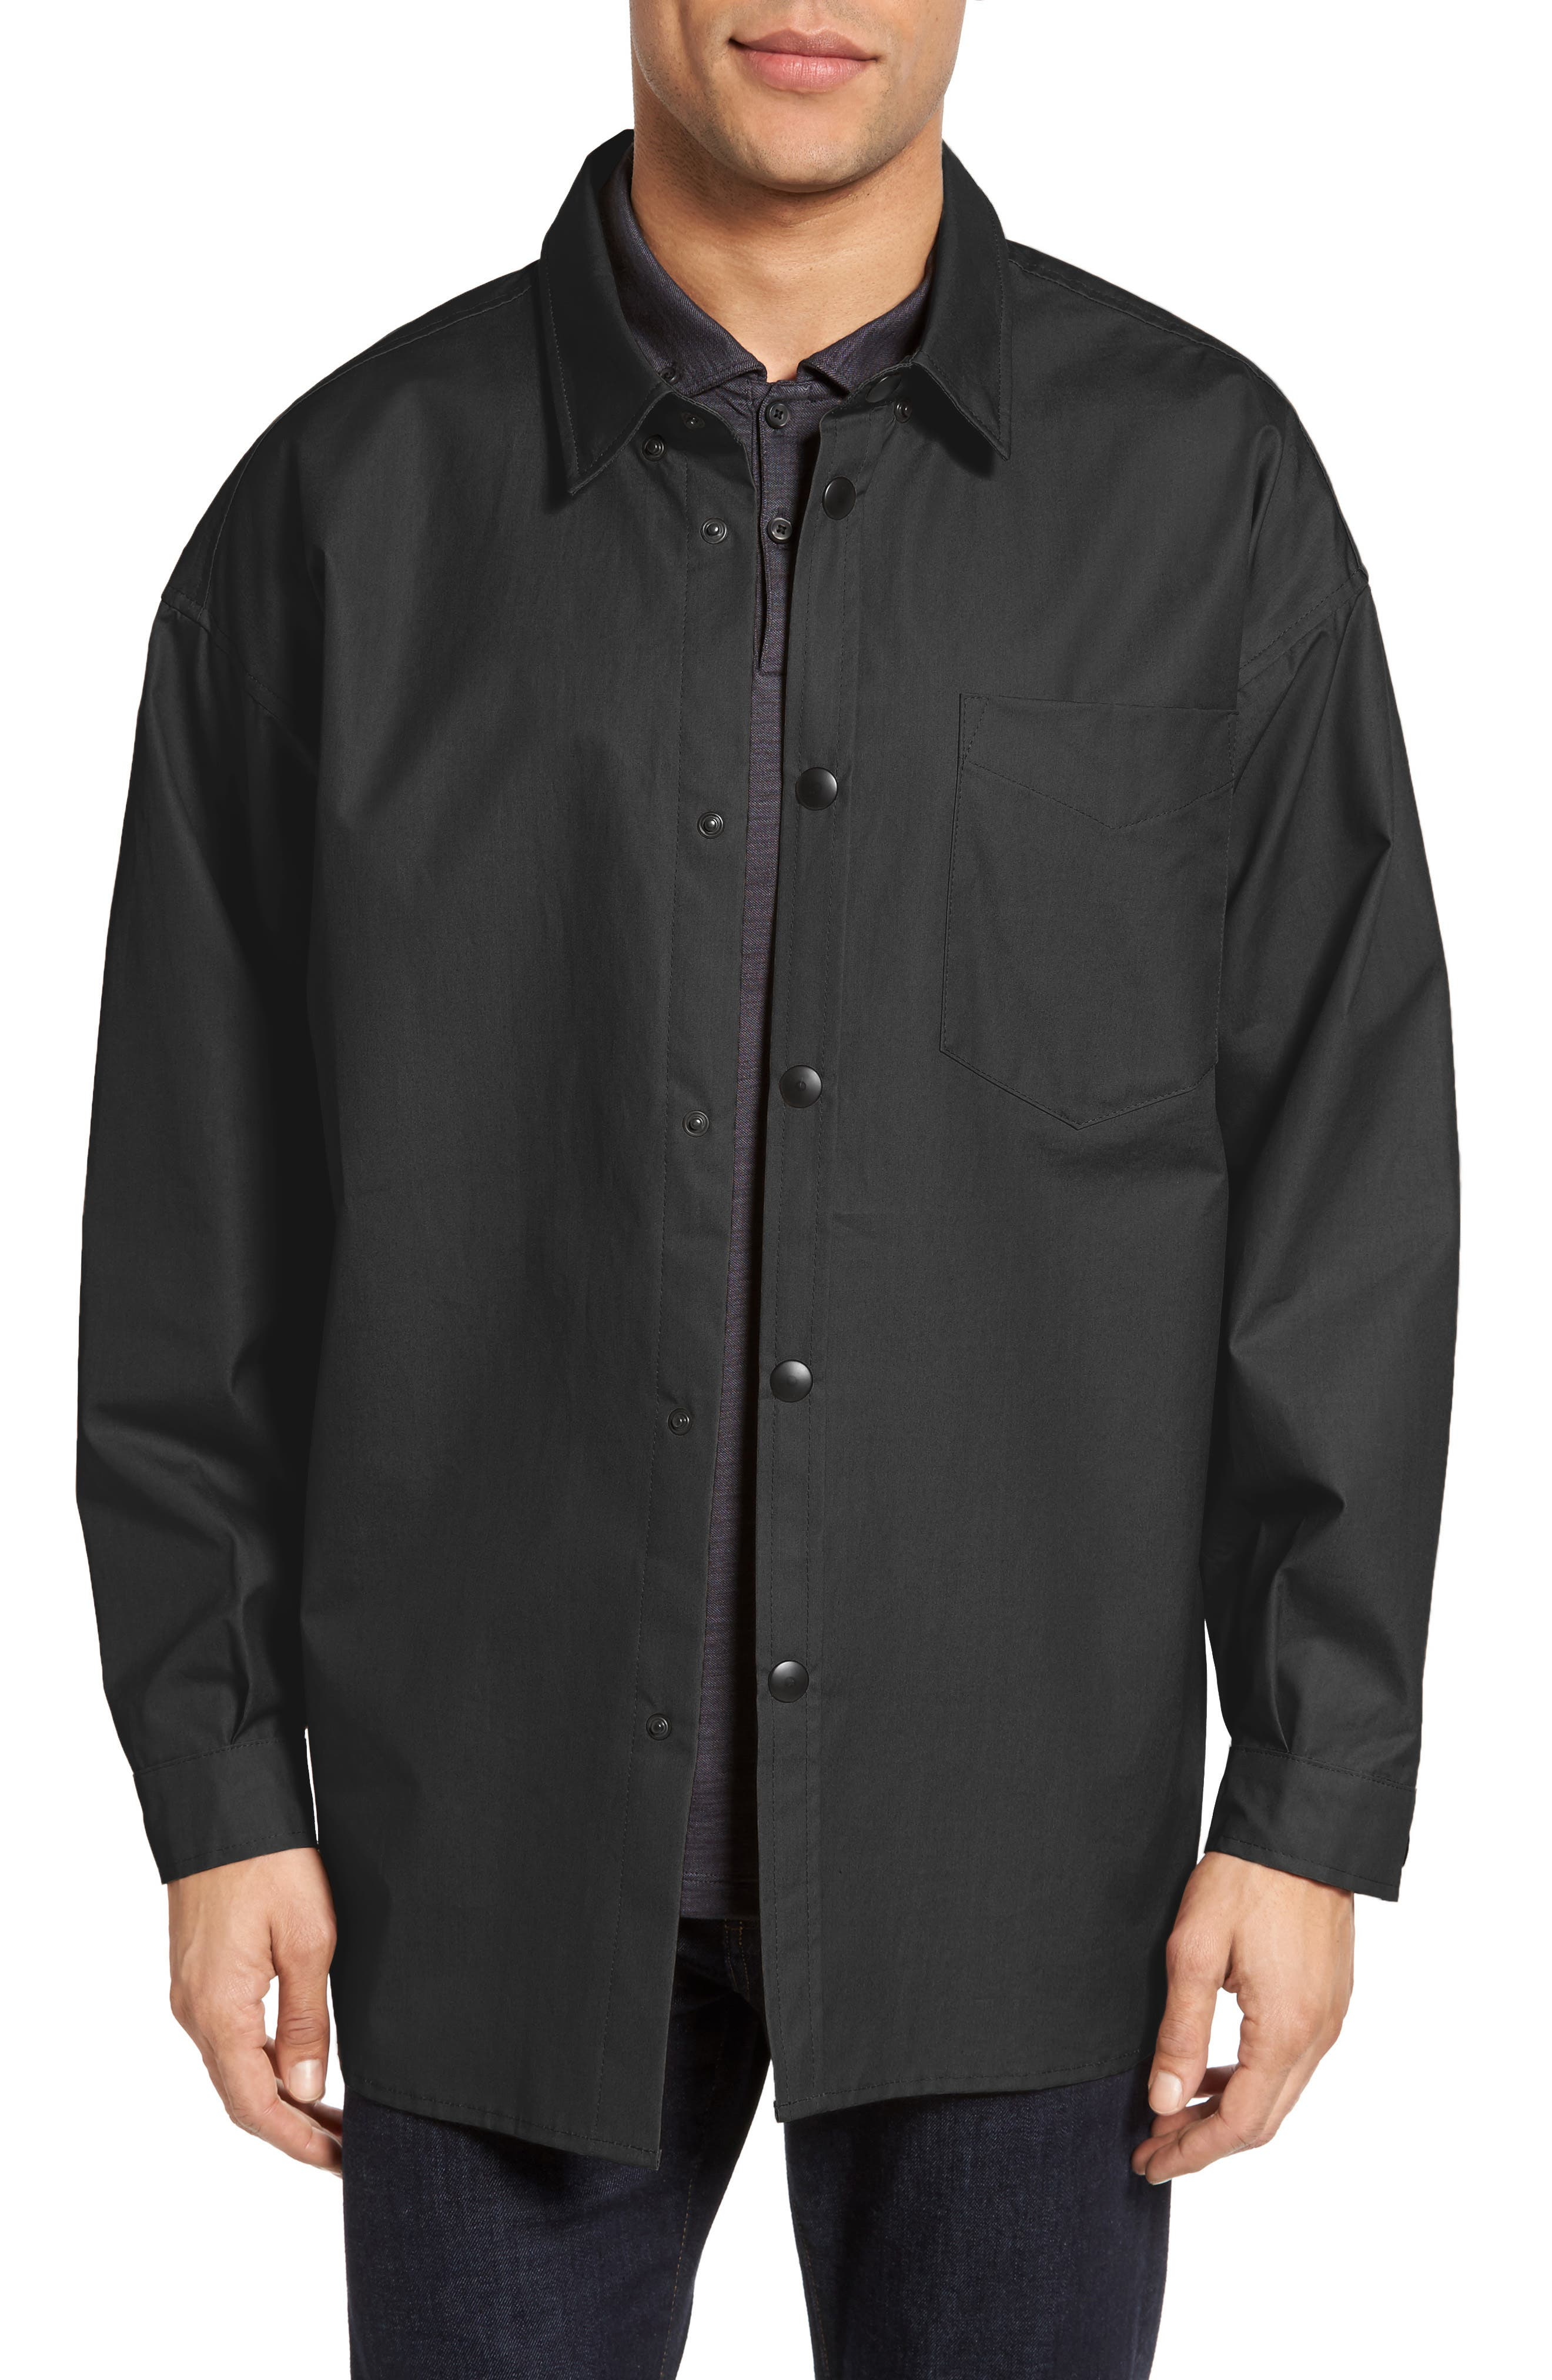 Lerum Relaxed Fit Shirt Jacket,                         Main,                         color, 001